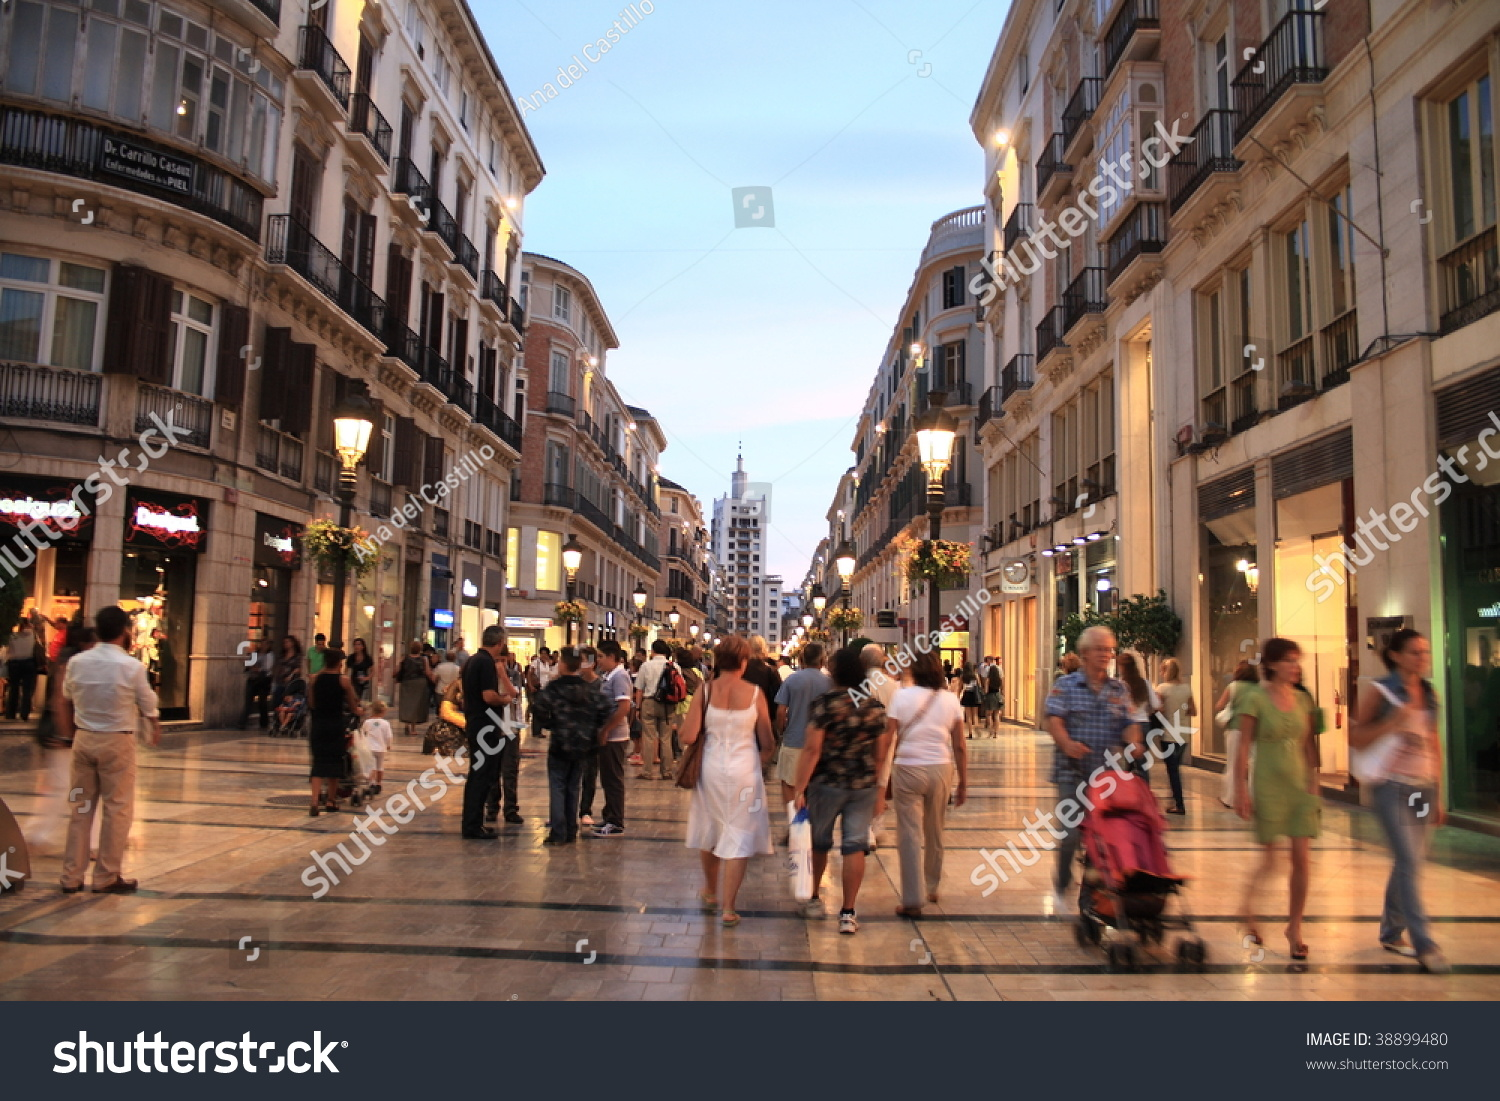 larios street the main street of malaga andalusia spain stock photo 38899480 shutterstock. Black Bedroom Furniture Sets. Home Design Ideas